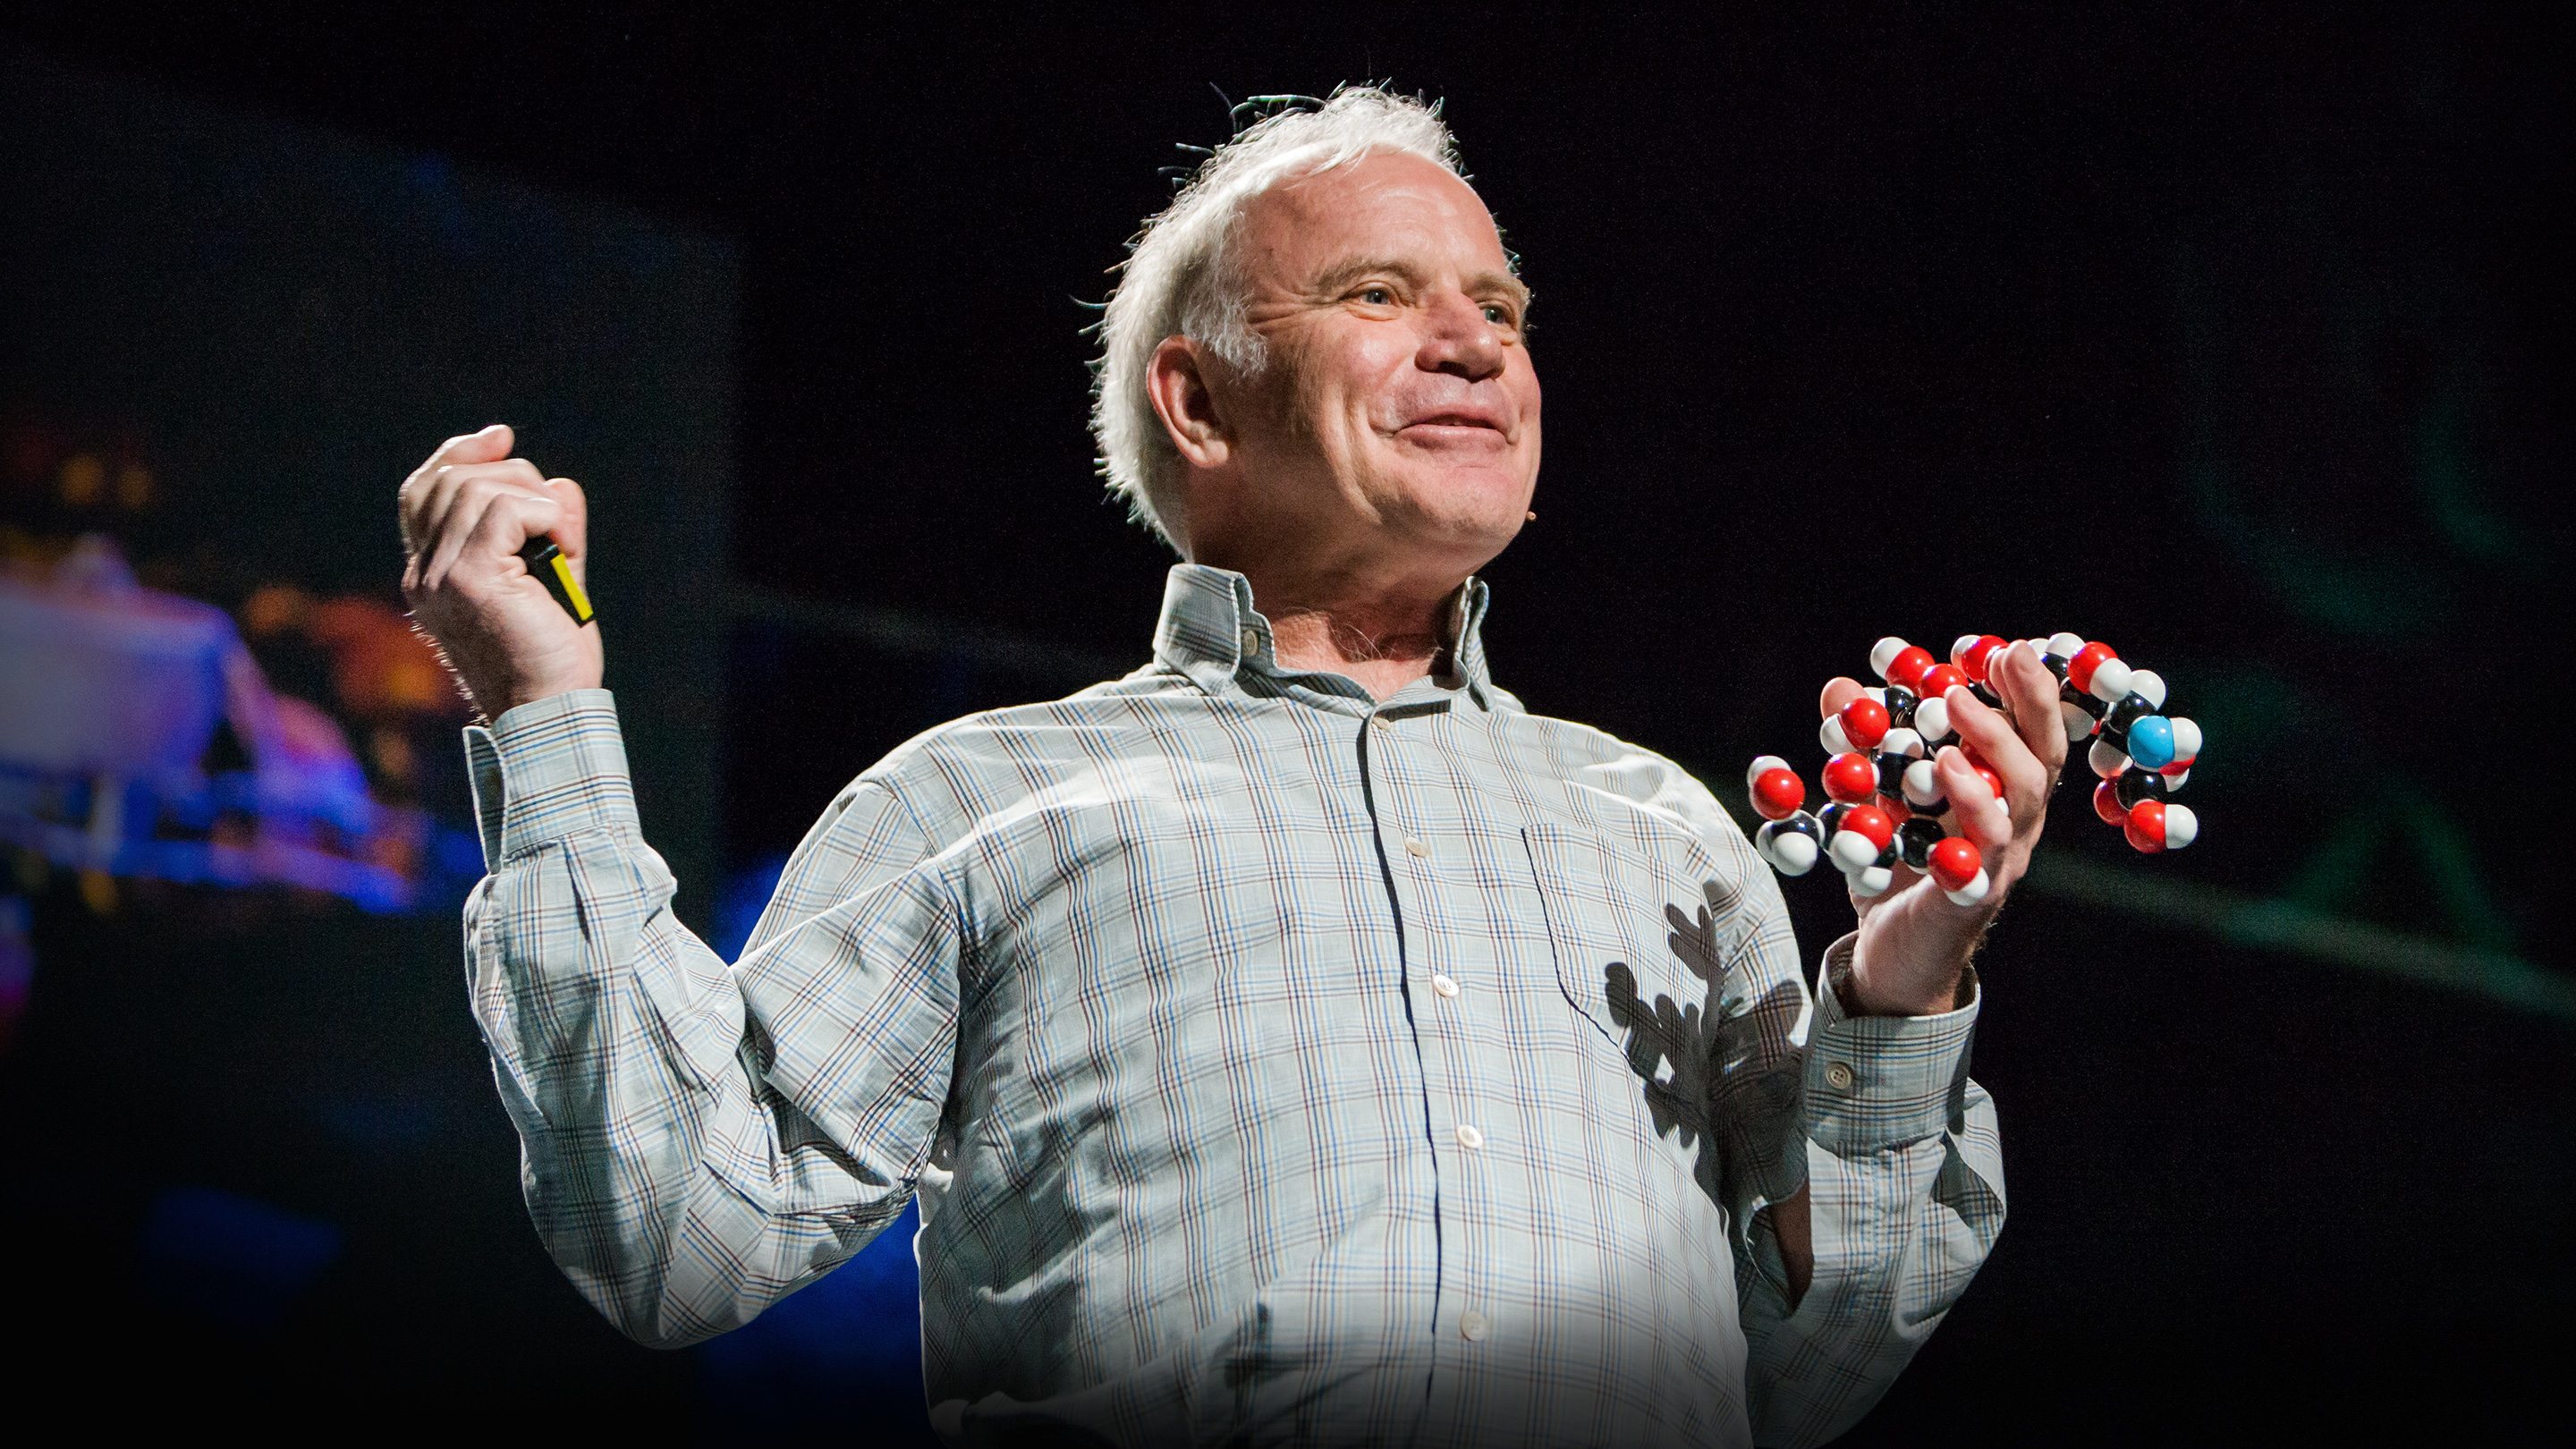 Bart Knols: 3 new ways to kill mosquitoes | TED Talk